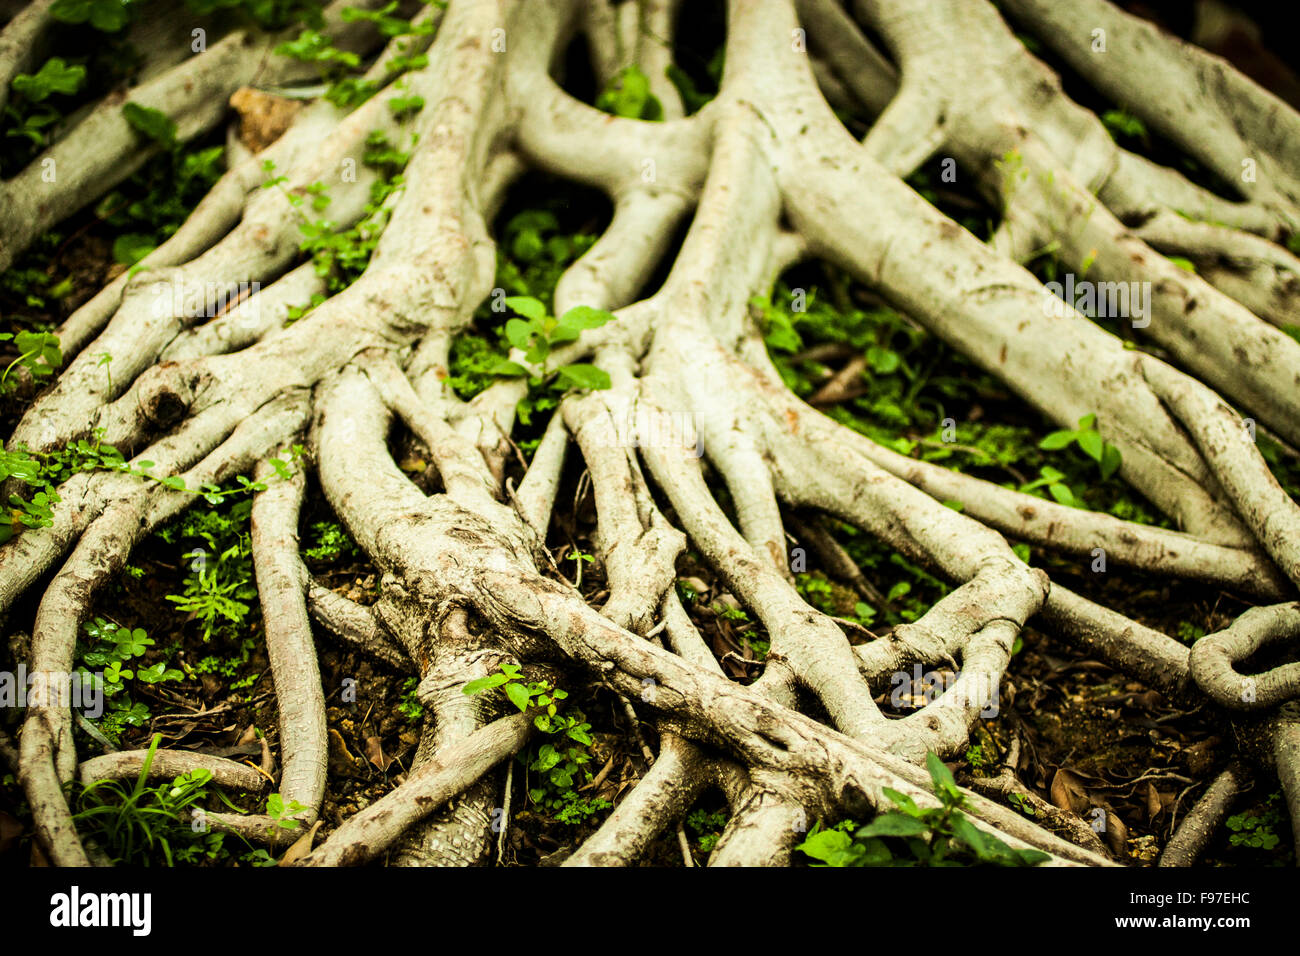 Sprawling roots of a tree. - Stock Image